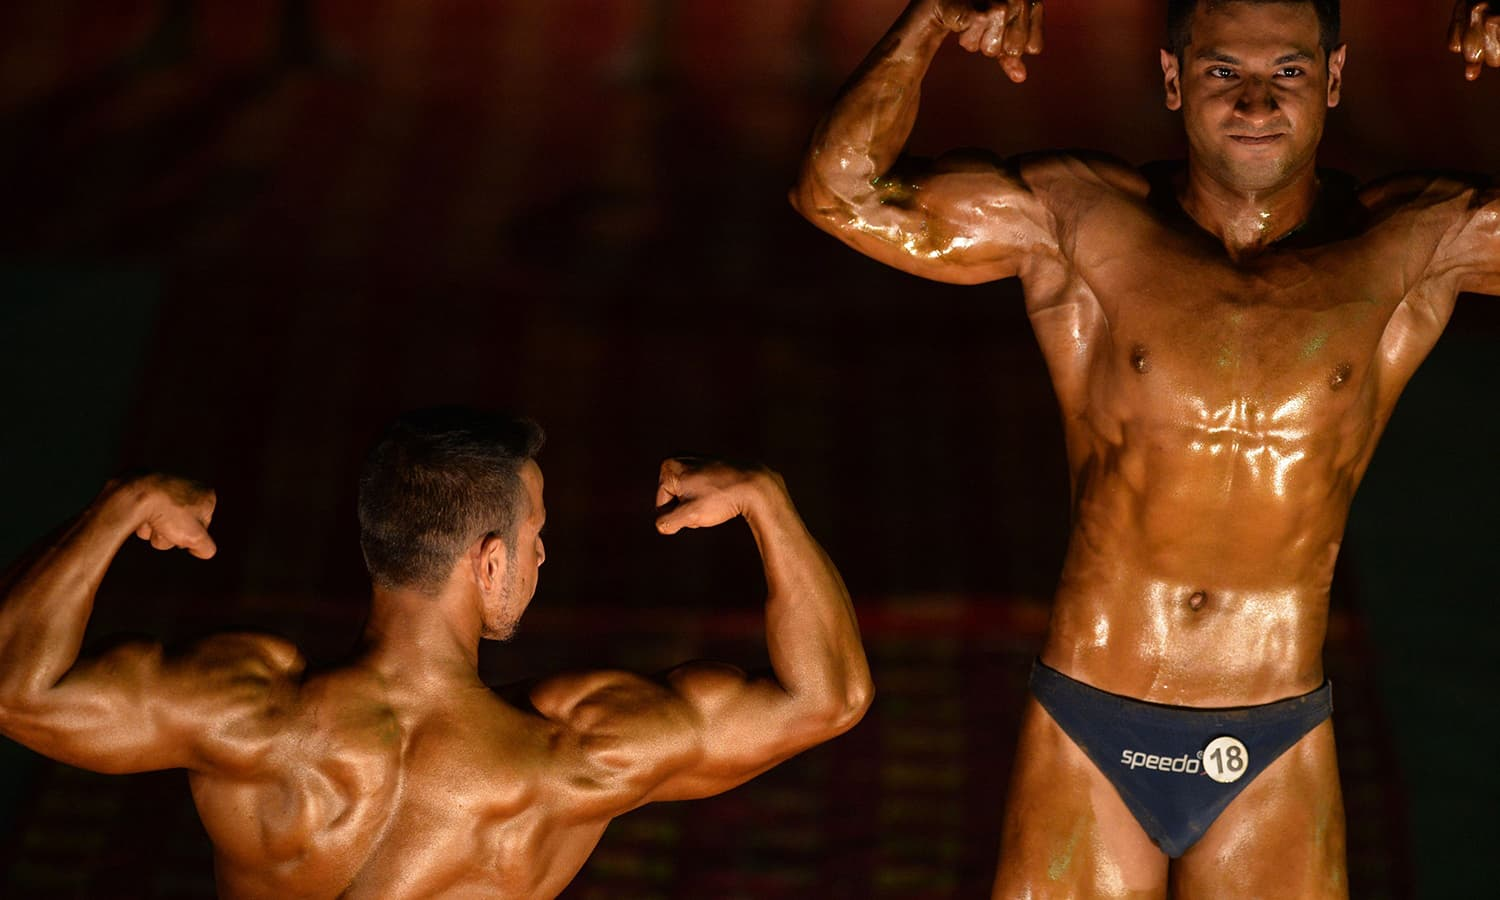 Bodybuilders perform during the competition. — AFP